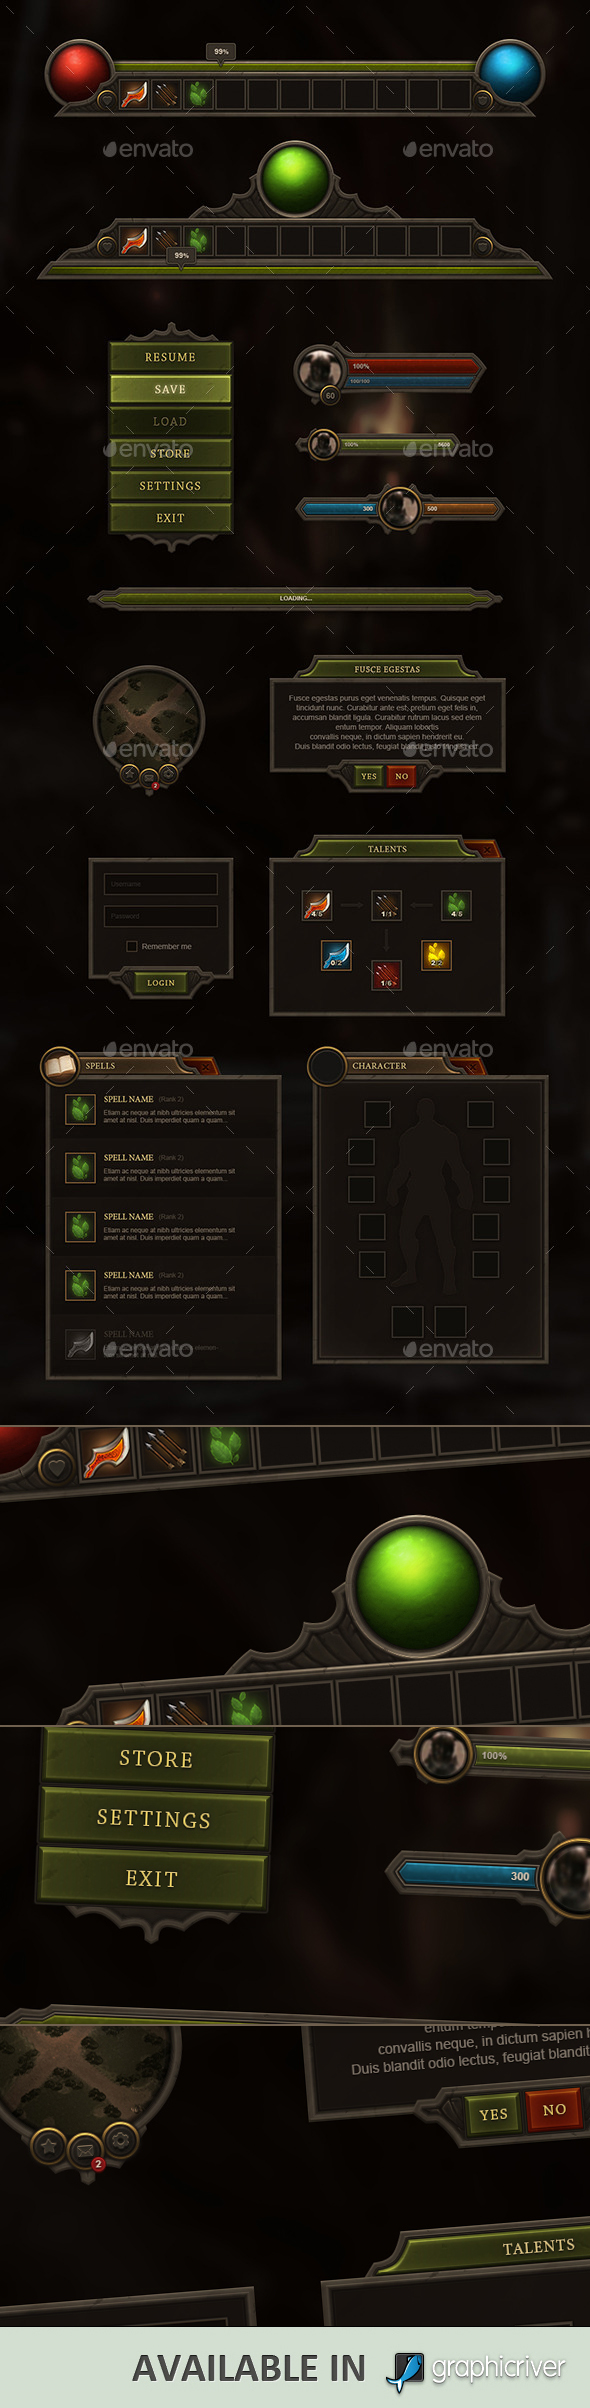 RPG and MMO User Interface by Evil-S